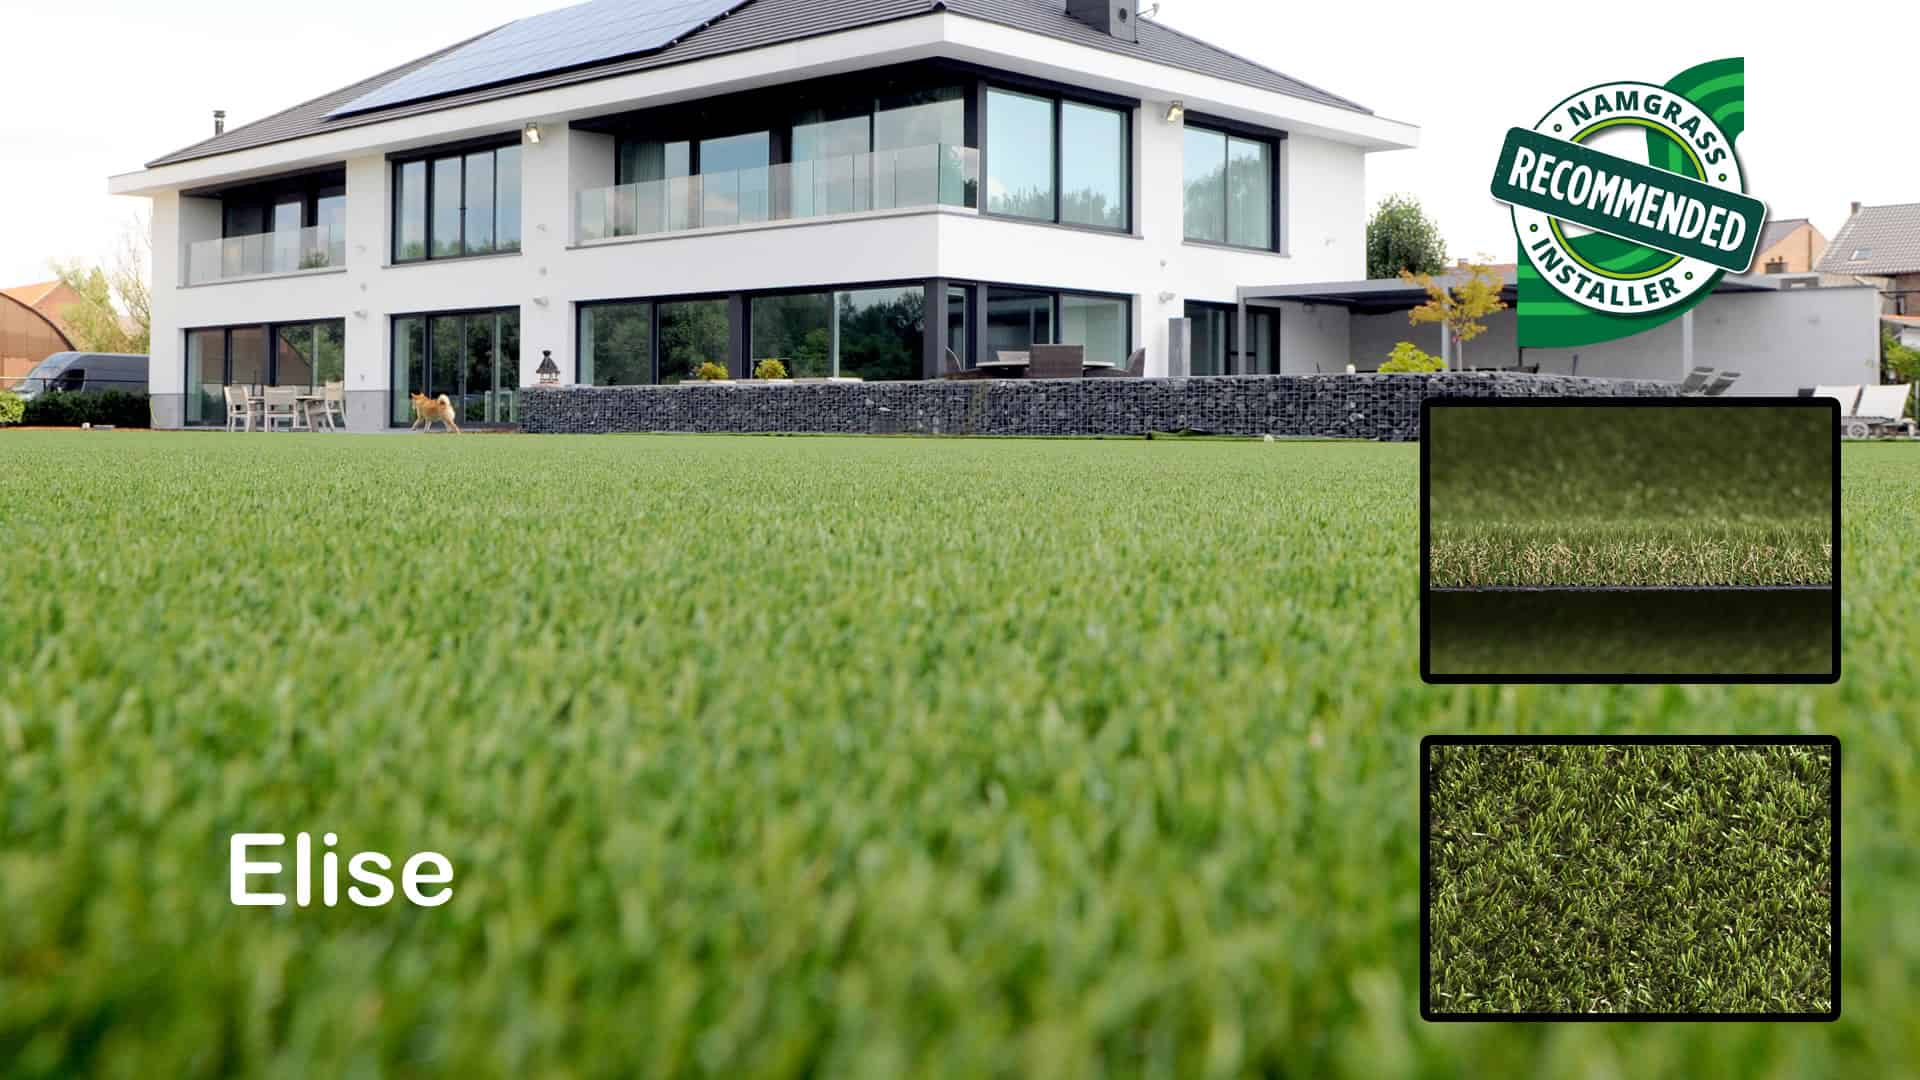 Elise Namgrass artificial grass